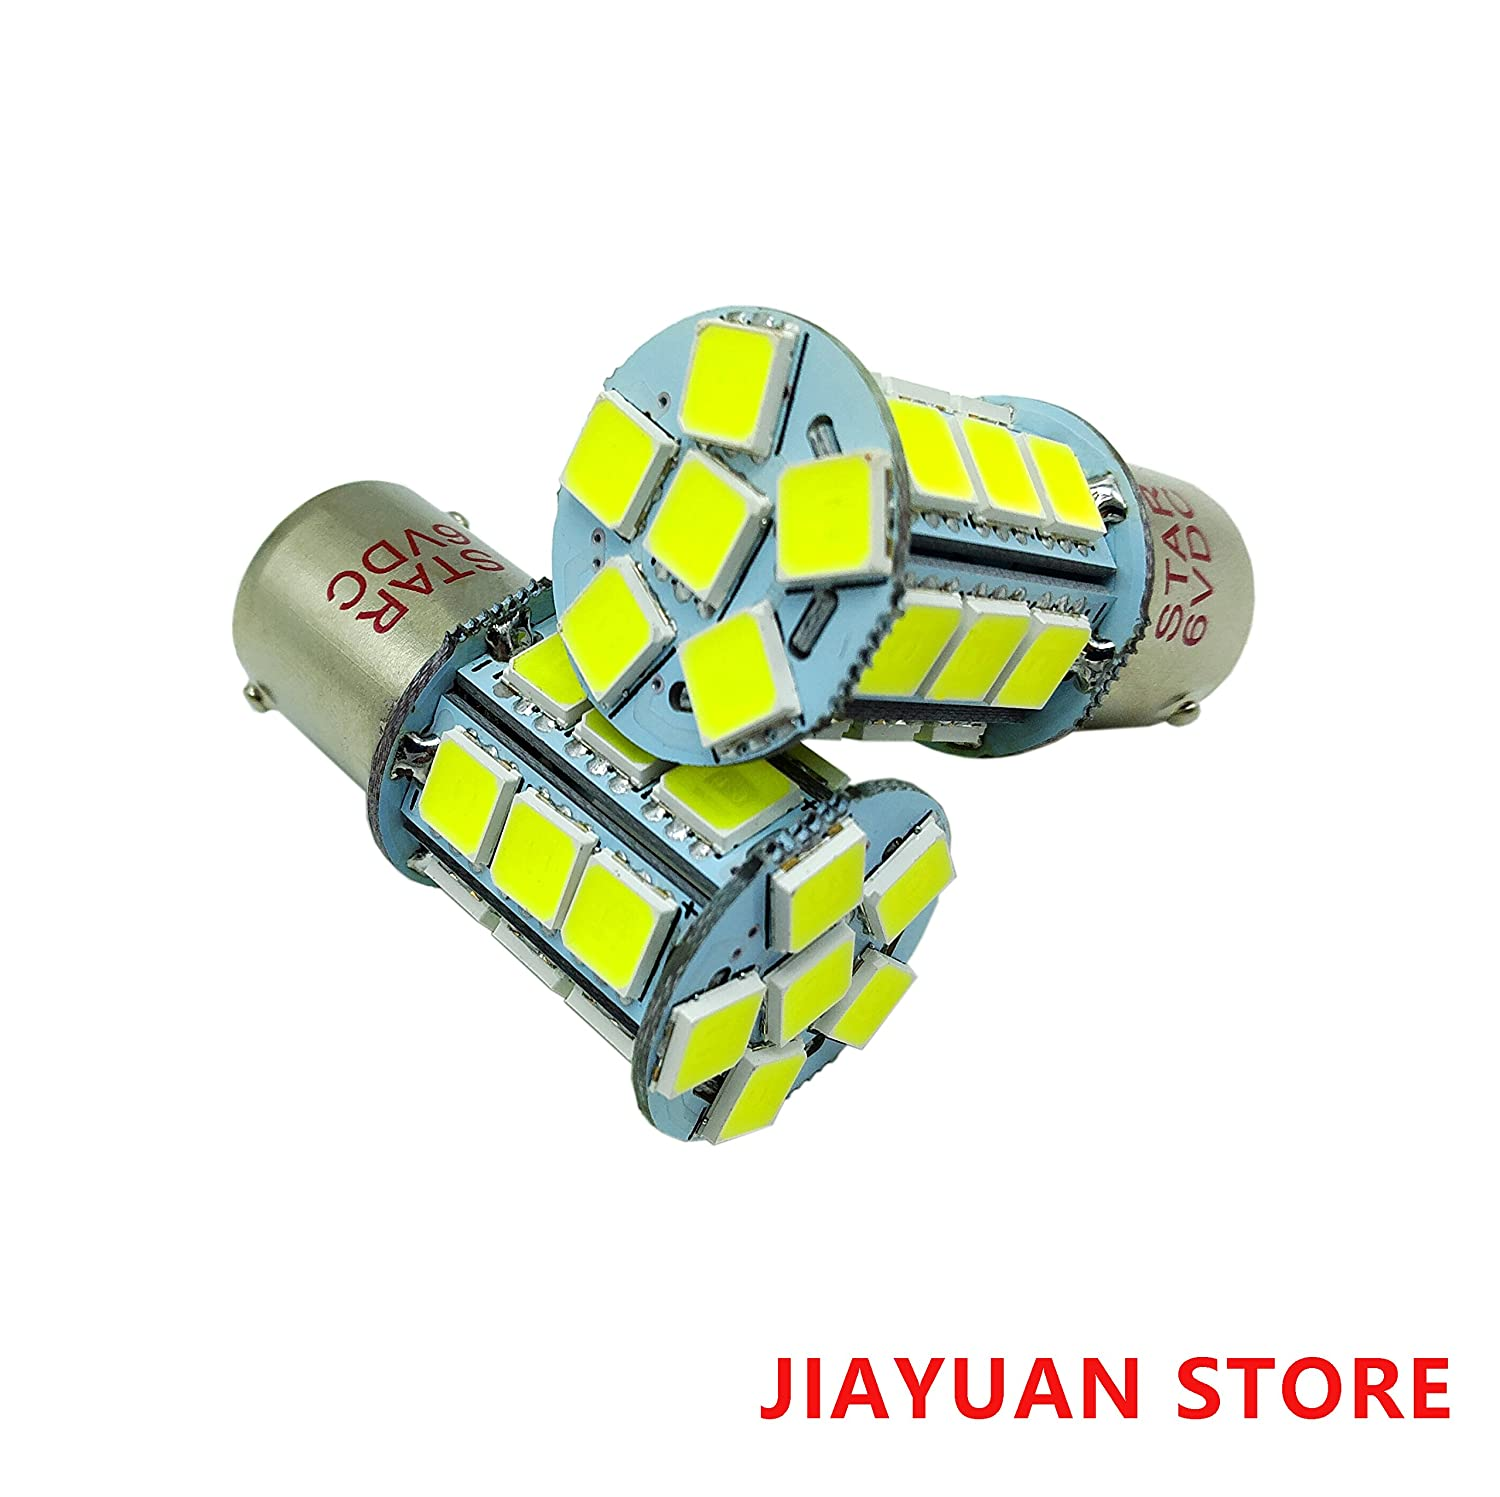 2 × 6V BA15S 1156 1141 1003 Led Light bulb Use for Backup Reverse Brake Tail Interior RV Camper Light, Super White 24SMD LEDs JIAYUAN BA15S-6V